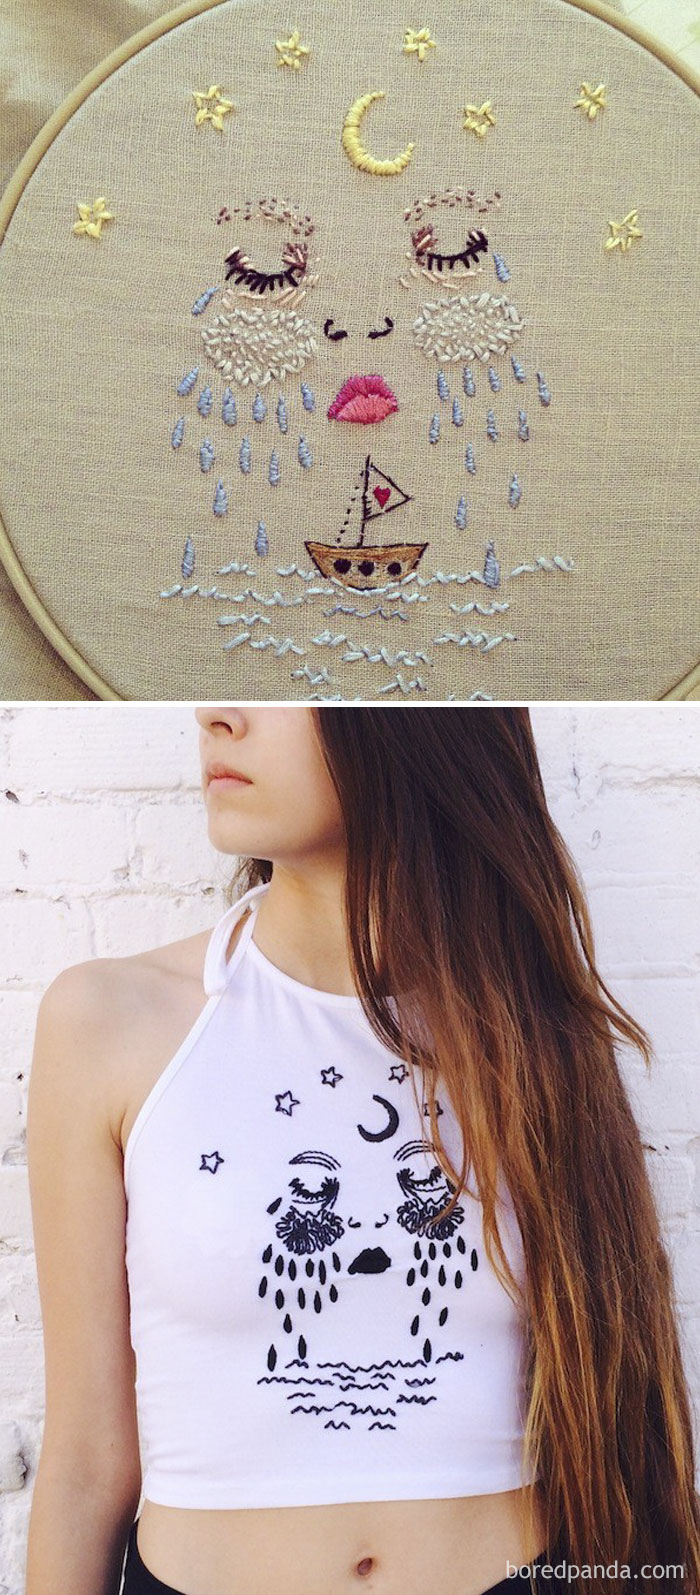 Fashion Label Brandy Melville Knocked Off The Artist Brain Foetus By Placing Her Embroidered Piece On Their Top